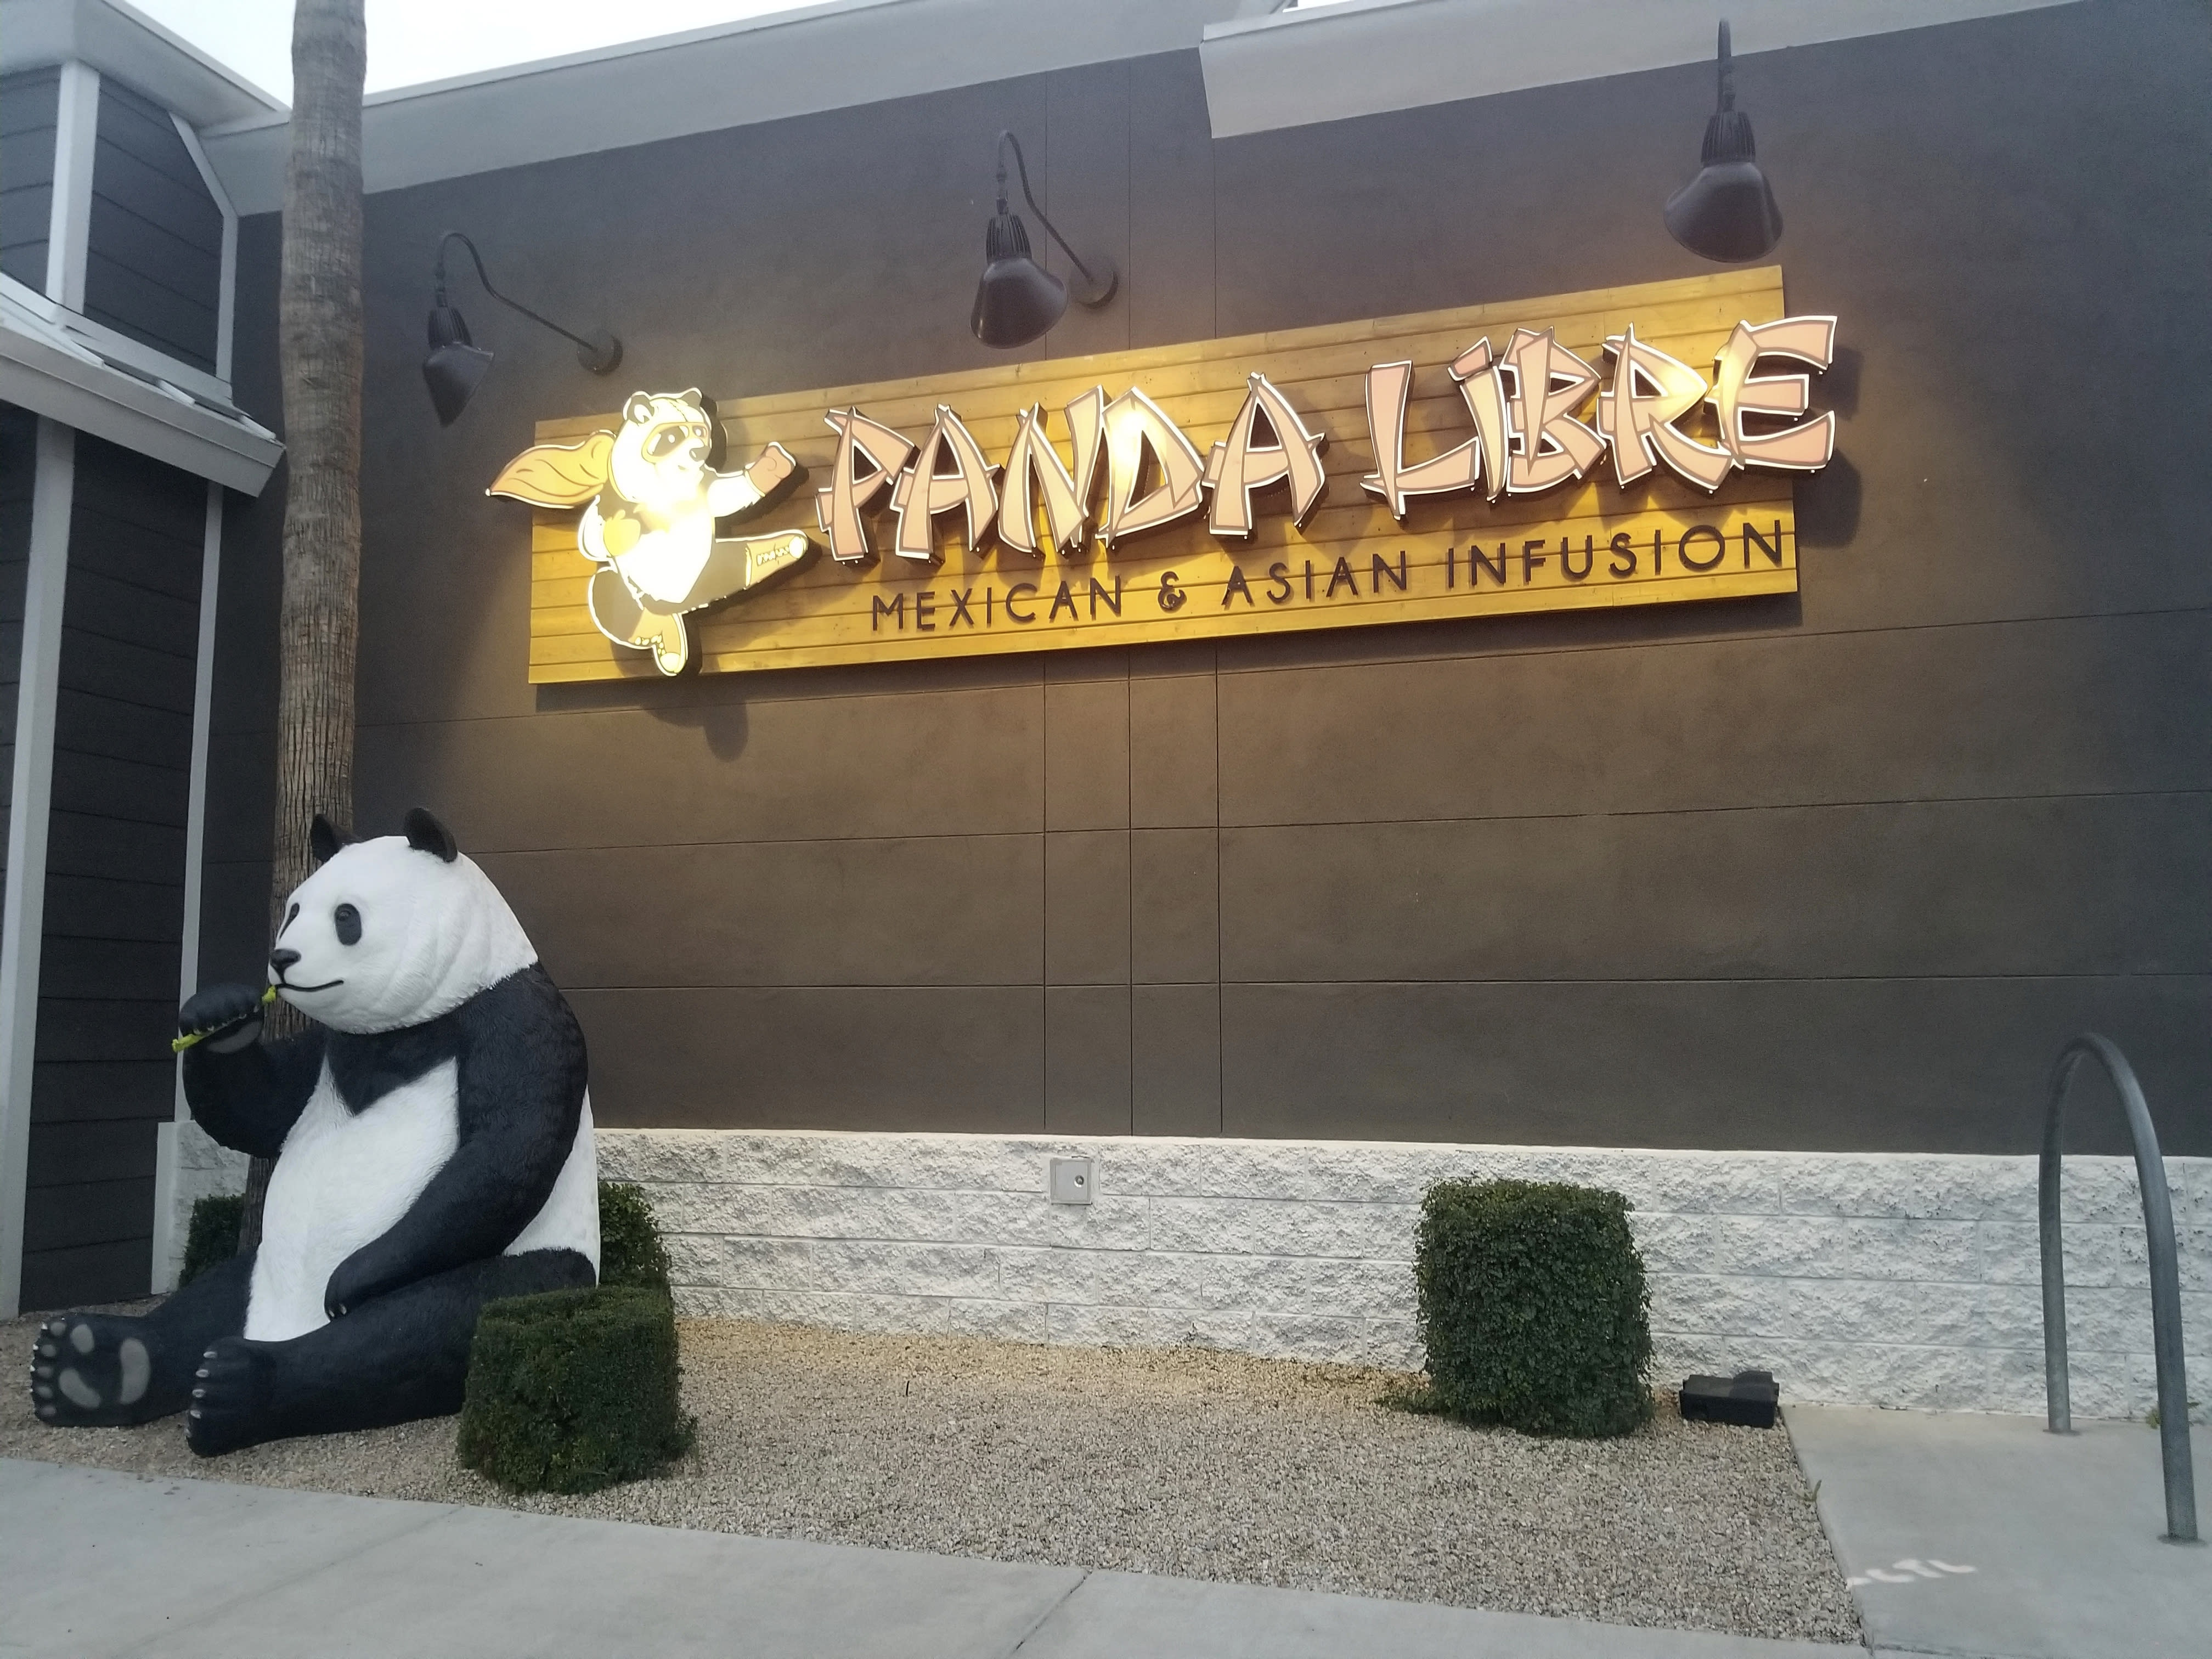 """Panda Libre, an Asian-Mexican fusion restaurant, in Gilbert, Ariz., is pictured on Thursday, Feb. 27, 2020. When picking a name for their Asian-Mexican fusion restaurant in suburban Phoenix, Paul and Nicole Fan settled on """"Panda Libre,"""" hoping the mix of China's iconic bear and the Spanish word for """"free"""" would signal to customers the type of cuisine it offered. That decision could cost them dearly. Chinese takeout chain Panda Express sued them in federal court last month alleging trademark infringement. (AP Photo/Terry Tang)"""